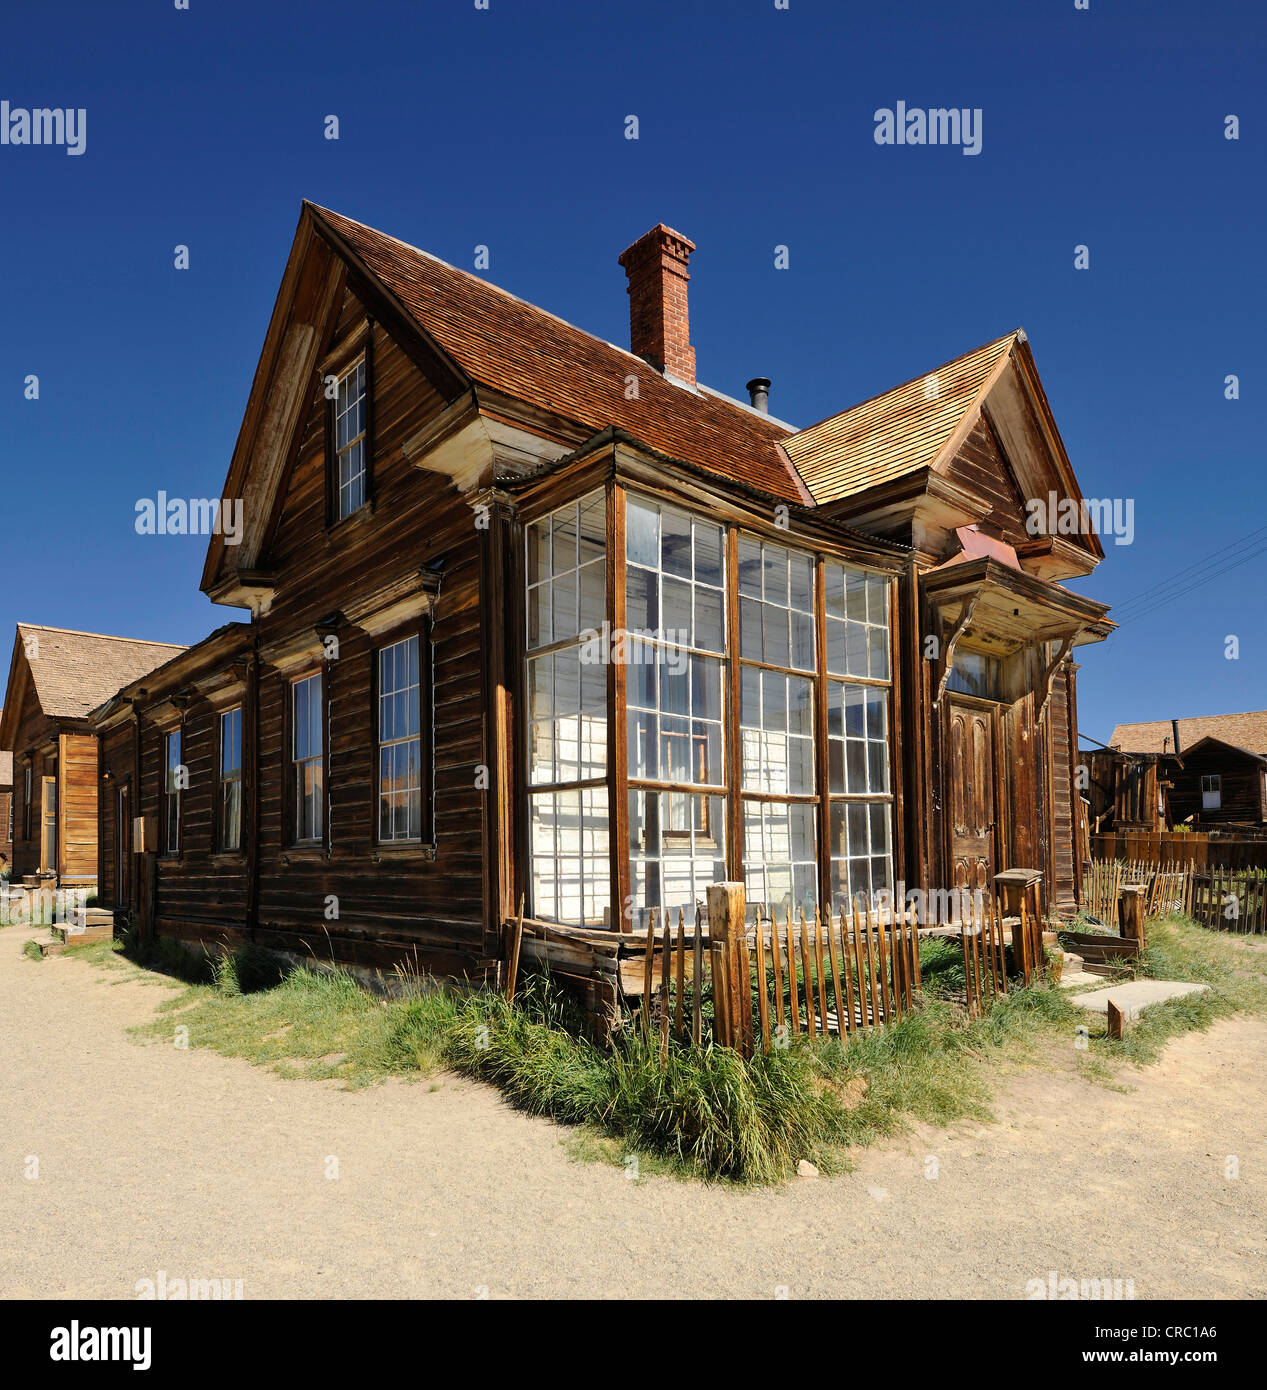 Residence of James Stuart Cain, a wealthy citizen from the ghost town of Bodie, a former gold mining town - Stock Image